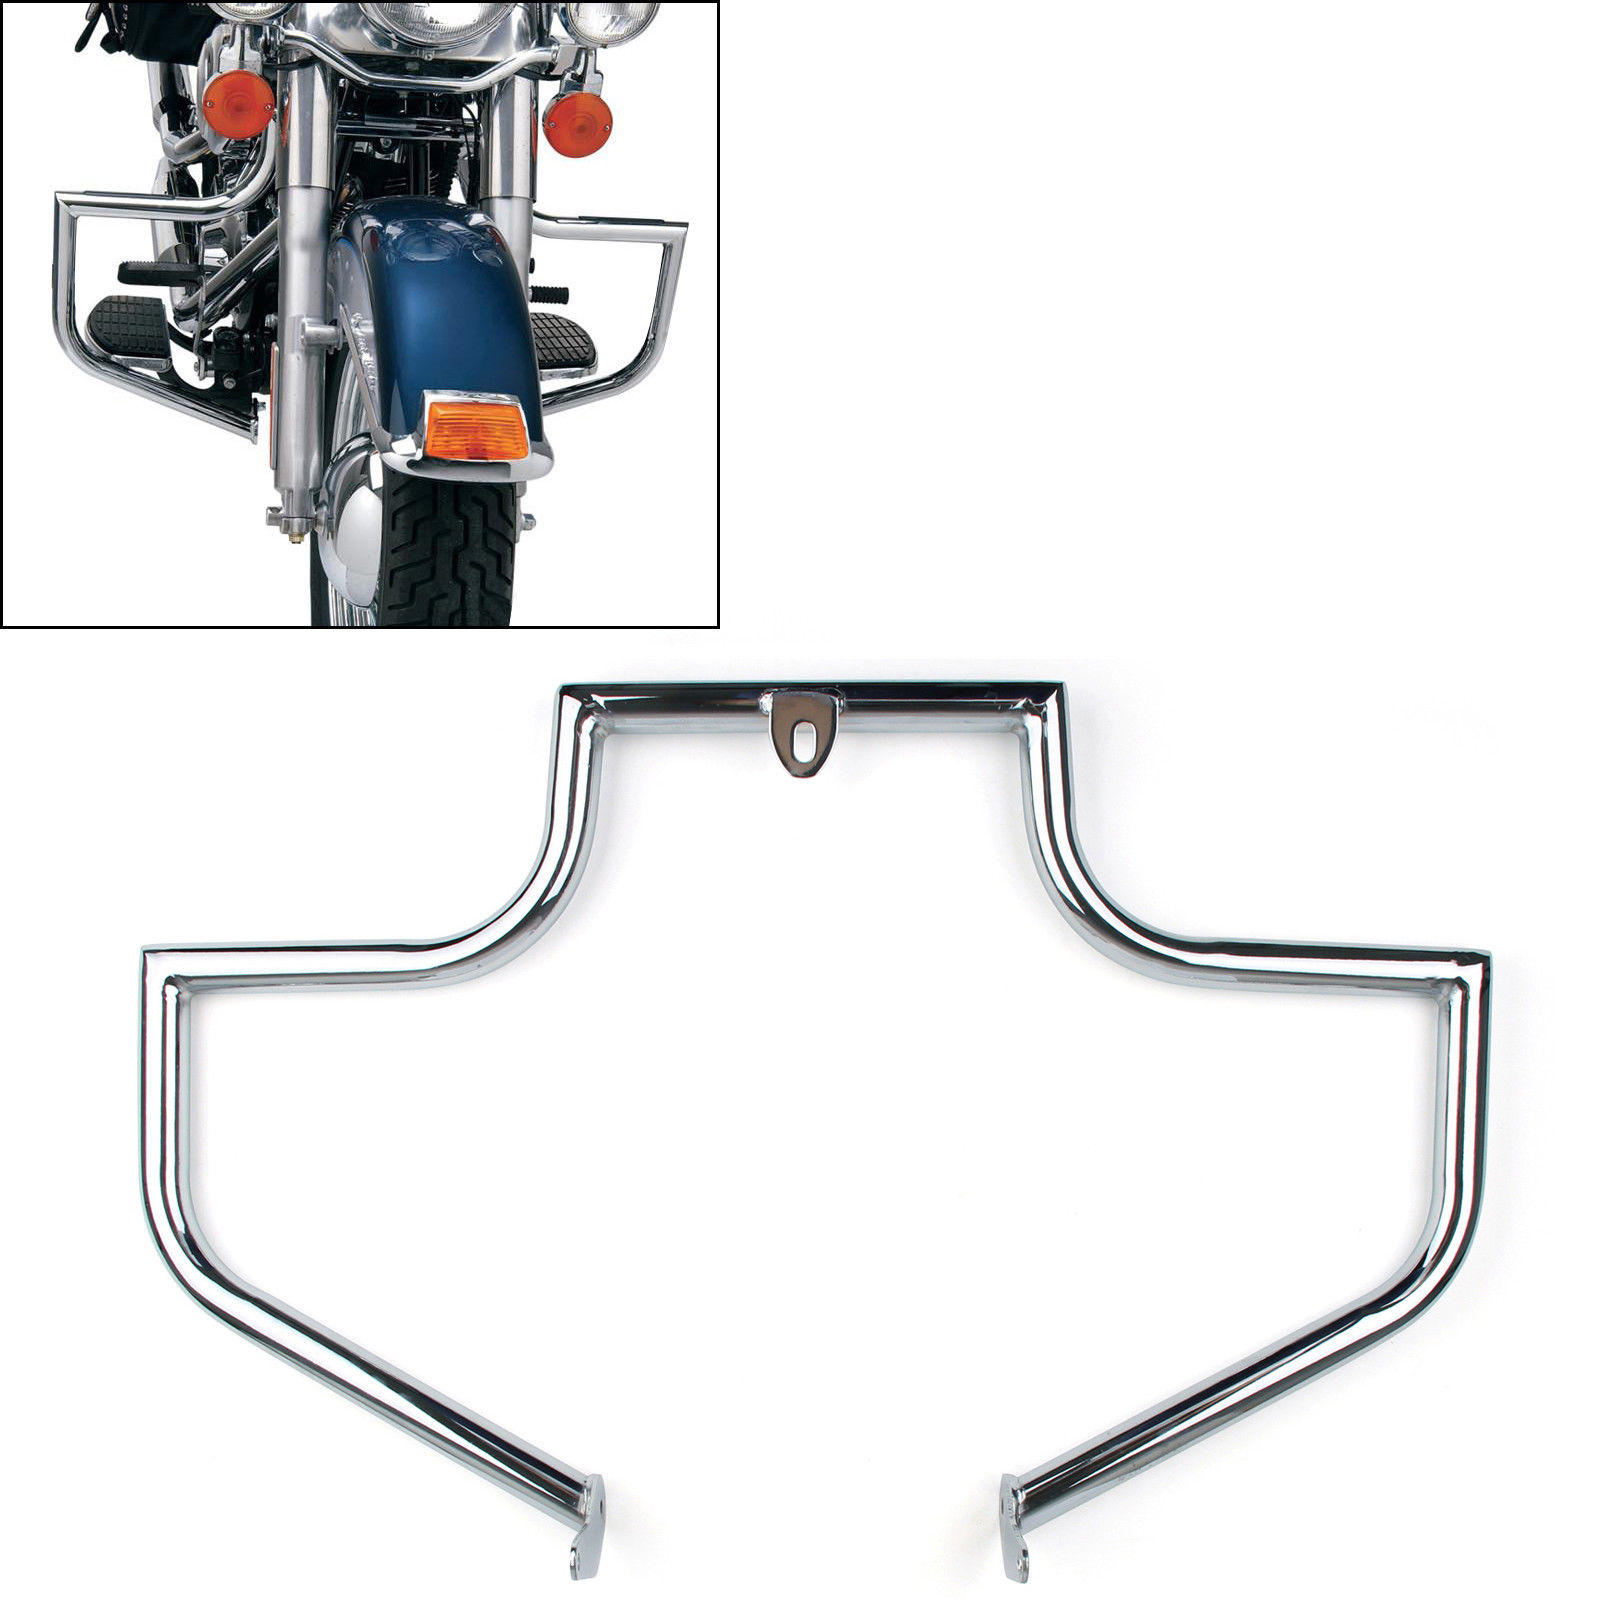 New Engine Guard Highway Crash Bar For Harley Softail